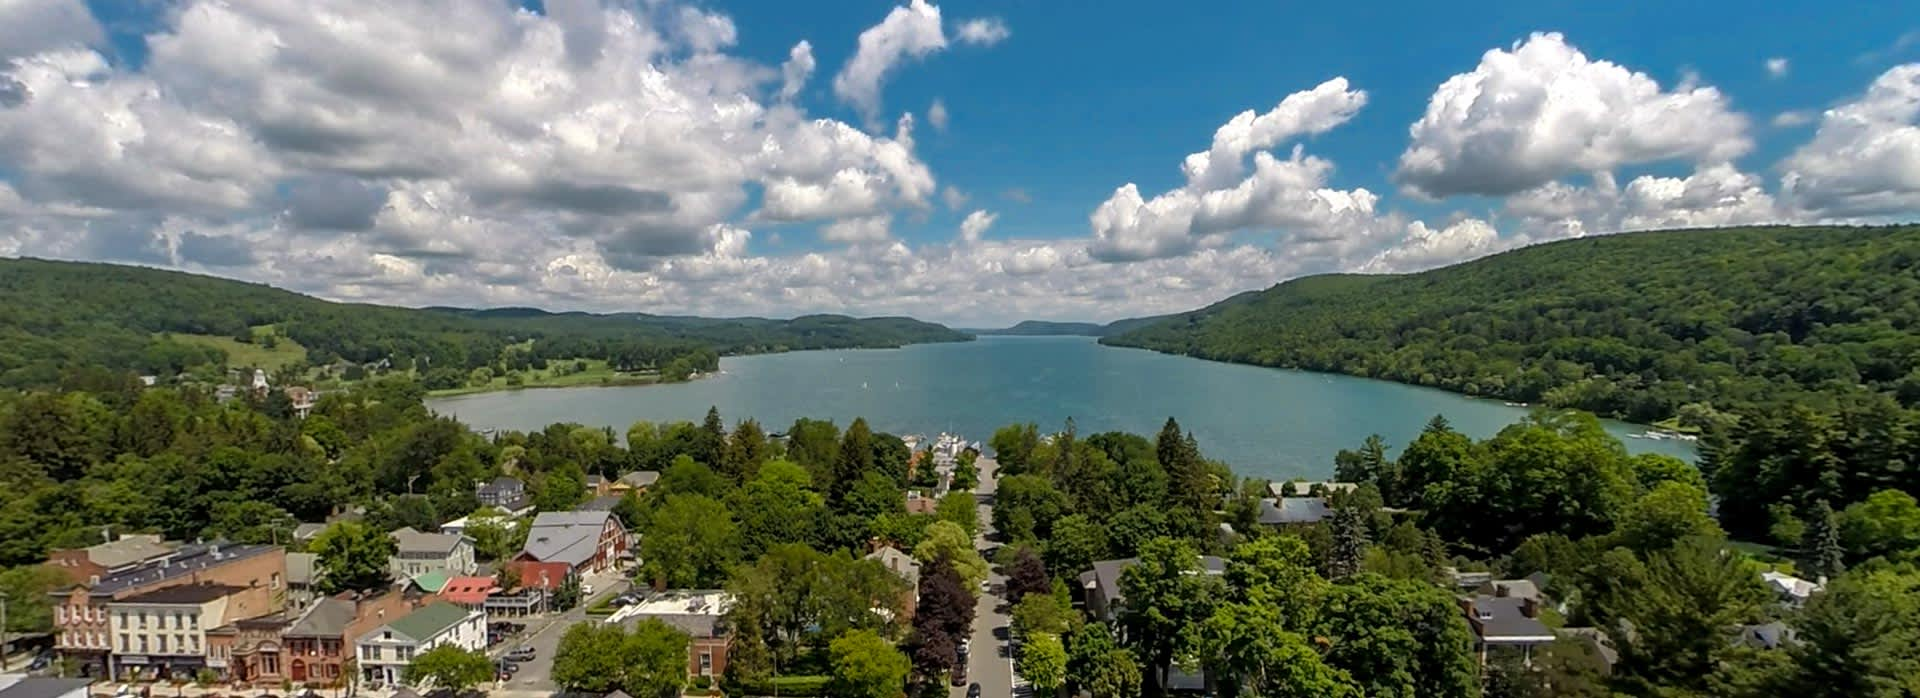 Cooperstown, New York Sample Itineraries